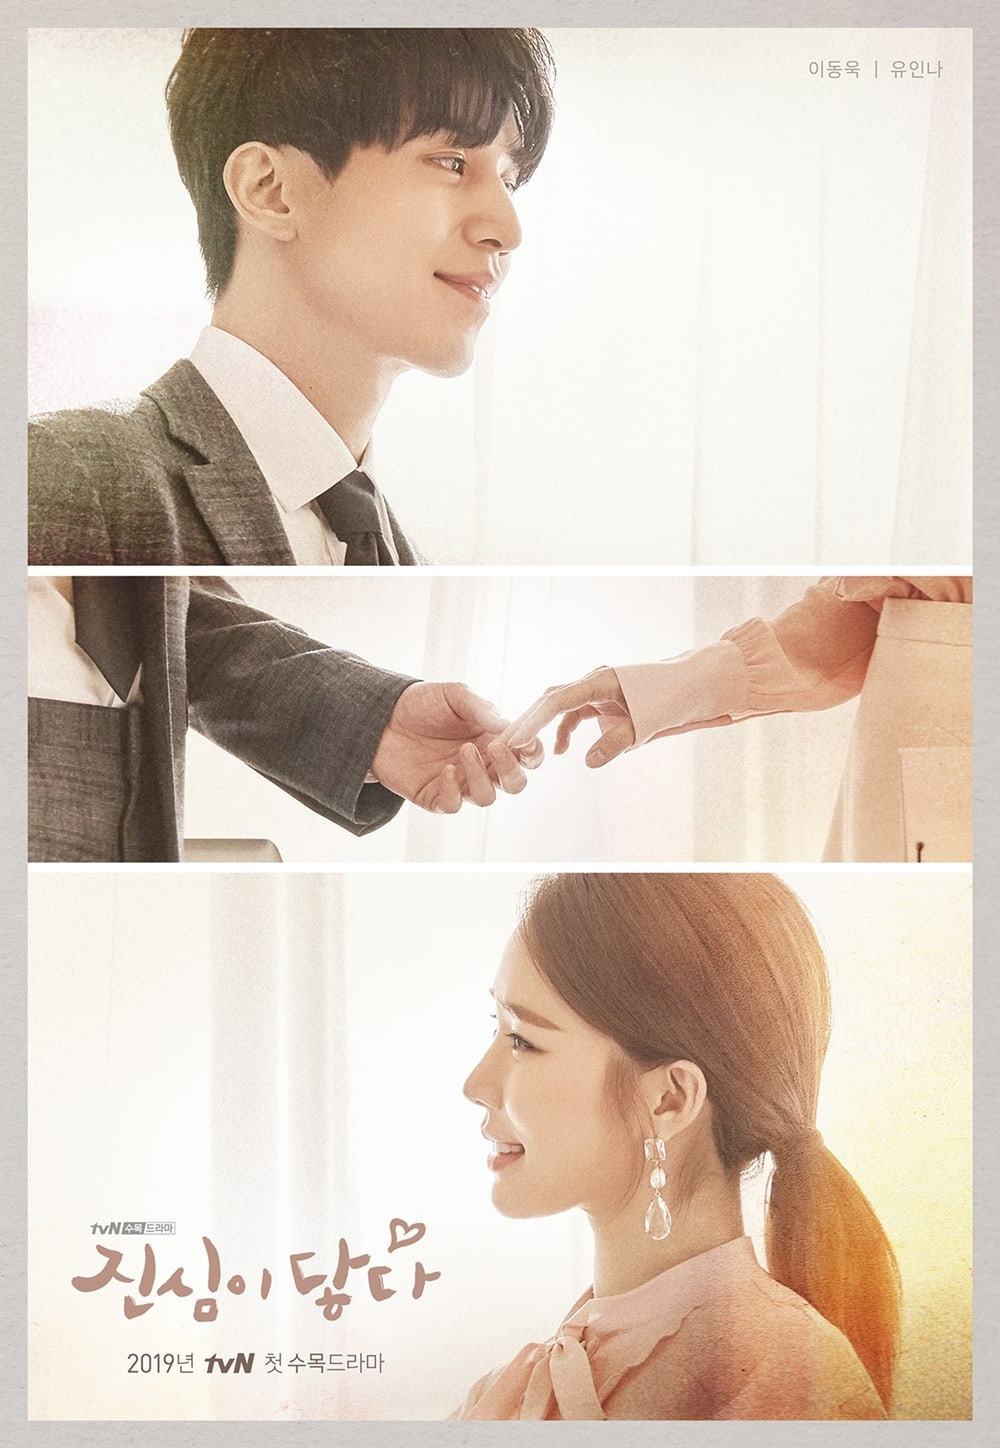 lee-dong-wook-yoo-in-na-touch-your-heart